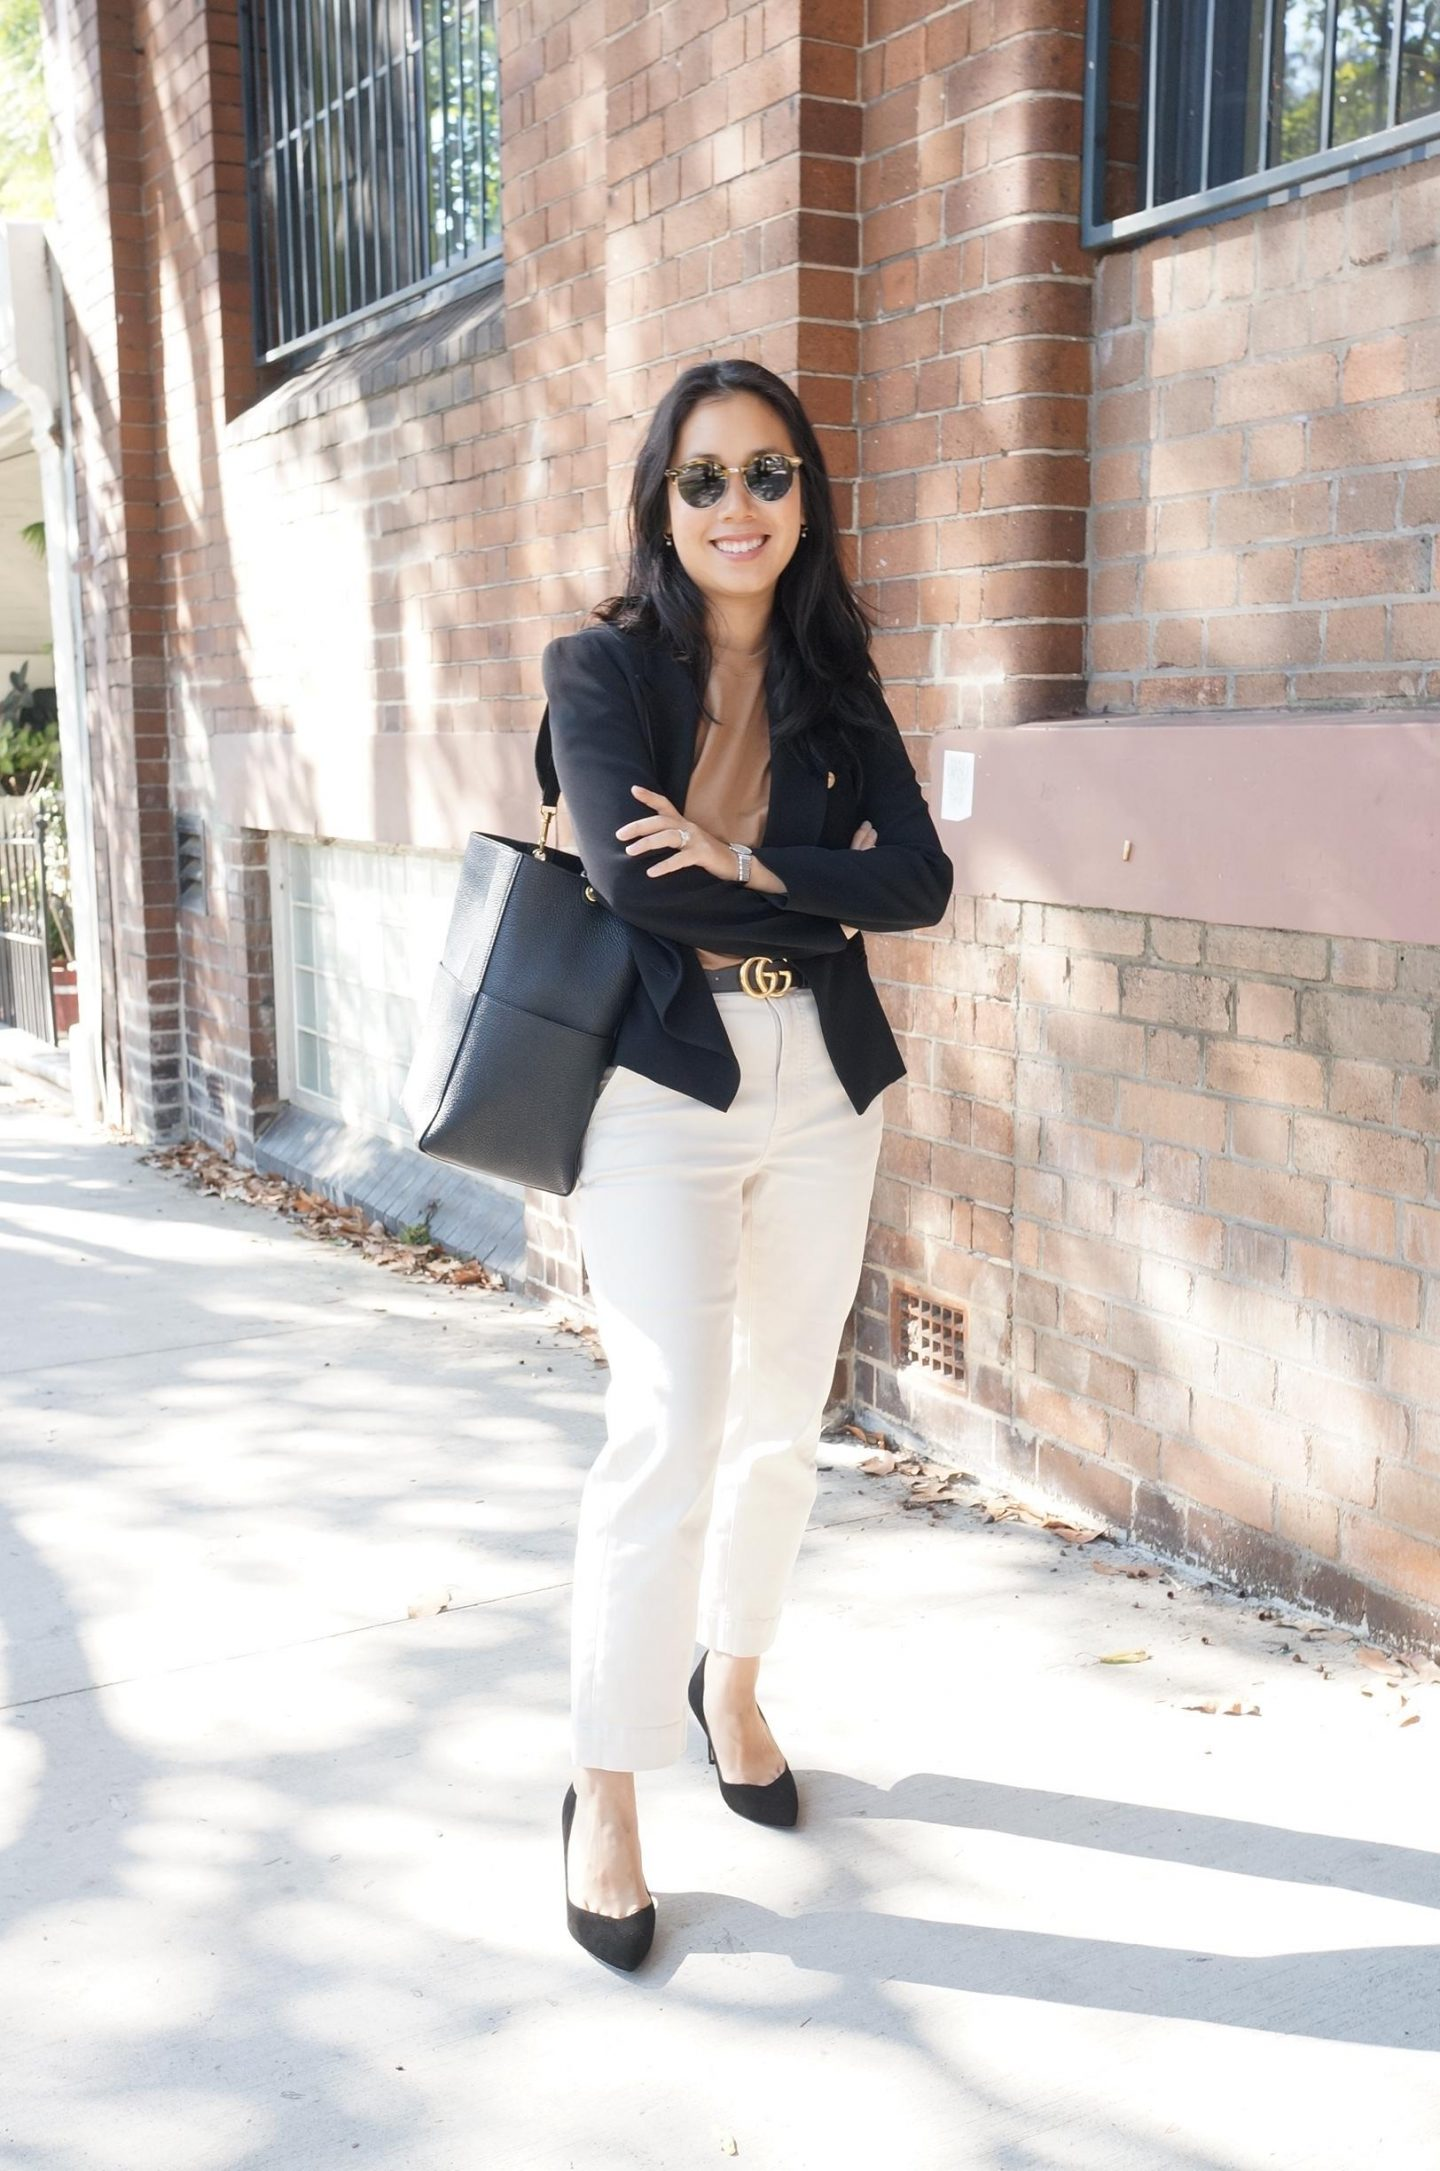 whatveewore blog post about budget for work clothes wearing everlane, gucci belt and sarah lloyd